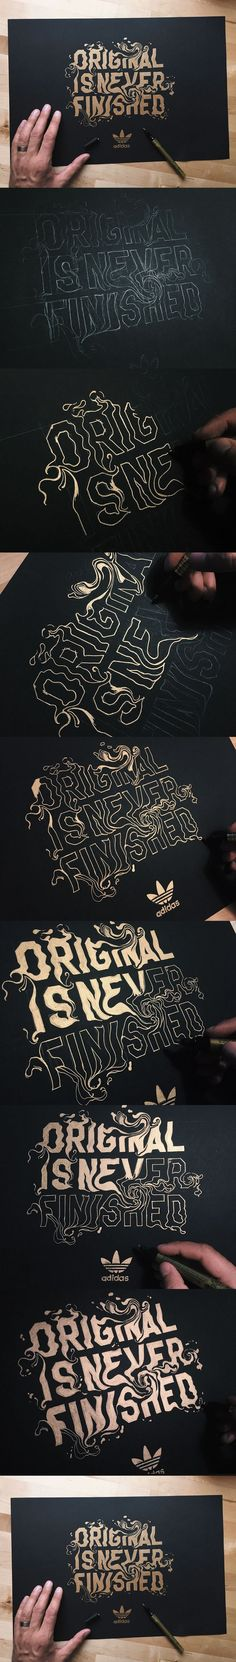 Adidas Typography | Original Is Never Finished on Behance #typography #lettering